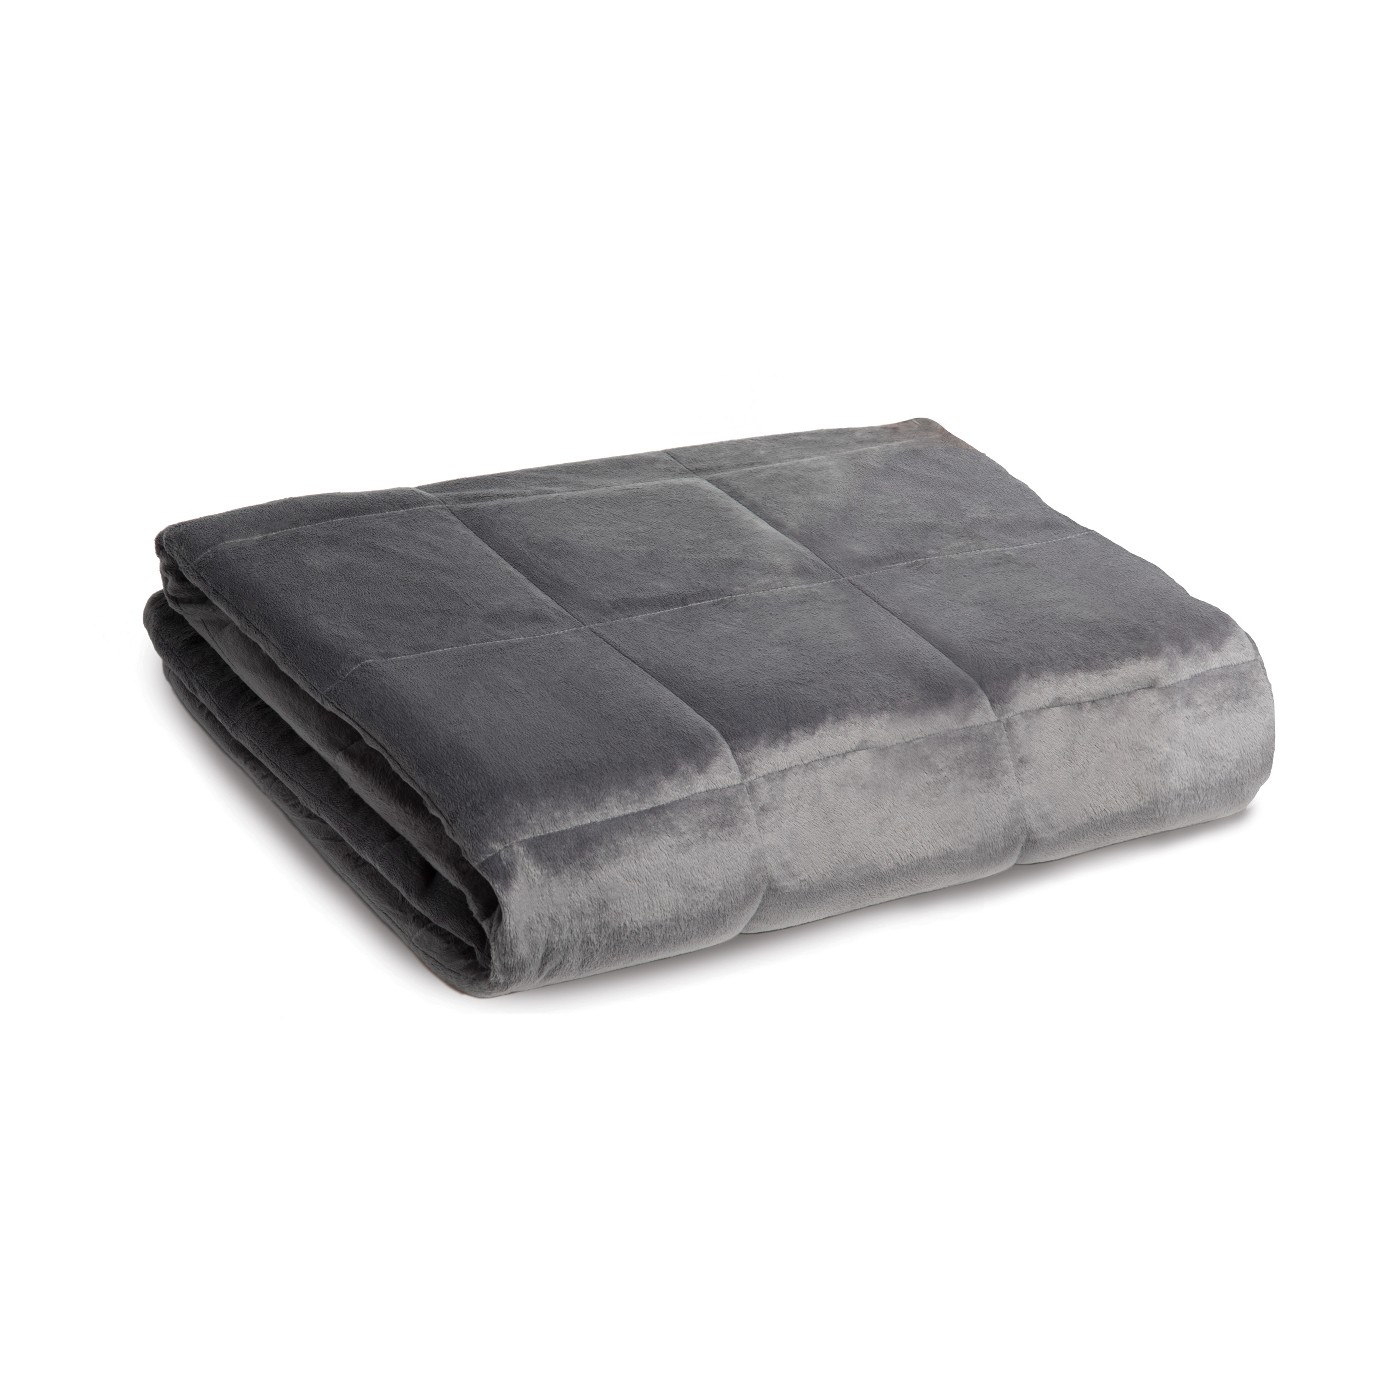 Weighted Blanket Gray - Calming Comfort